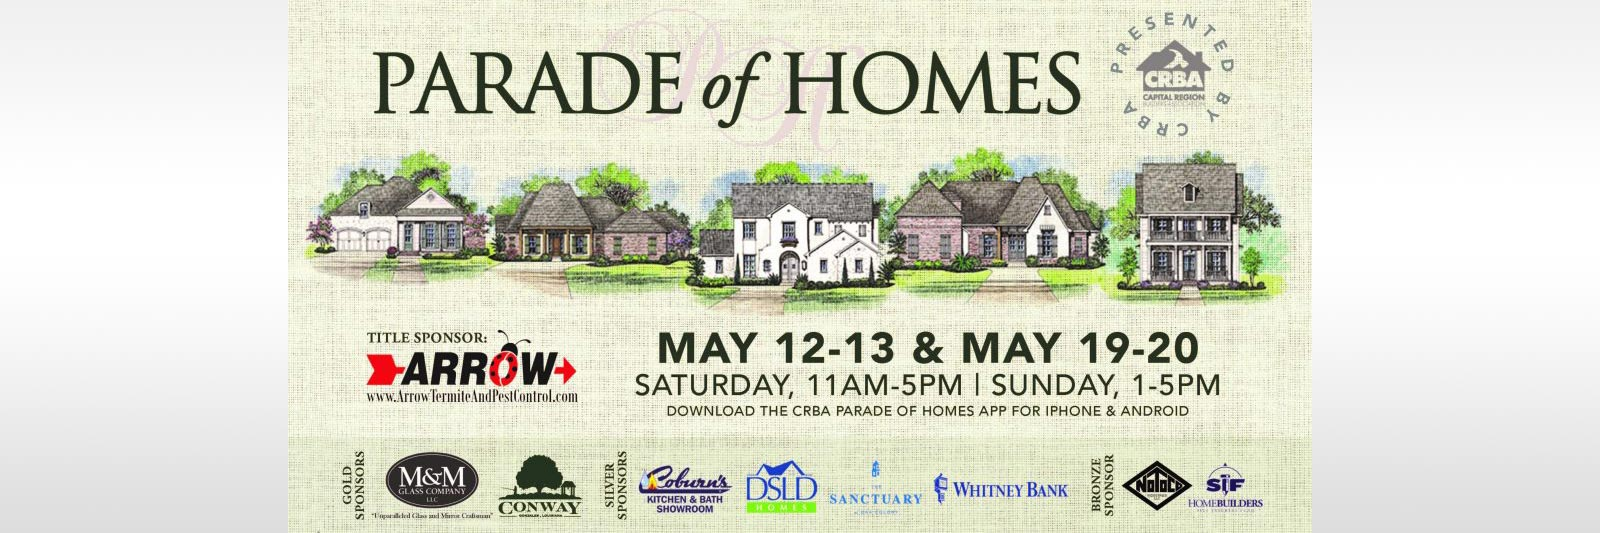 2018 Parade of Homes in Baton Rouge